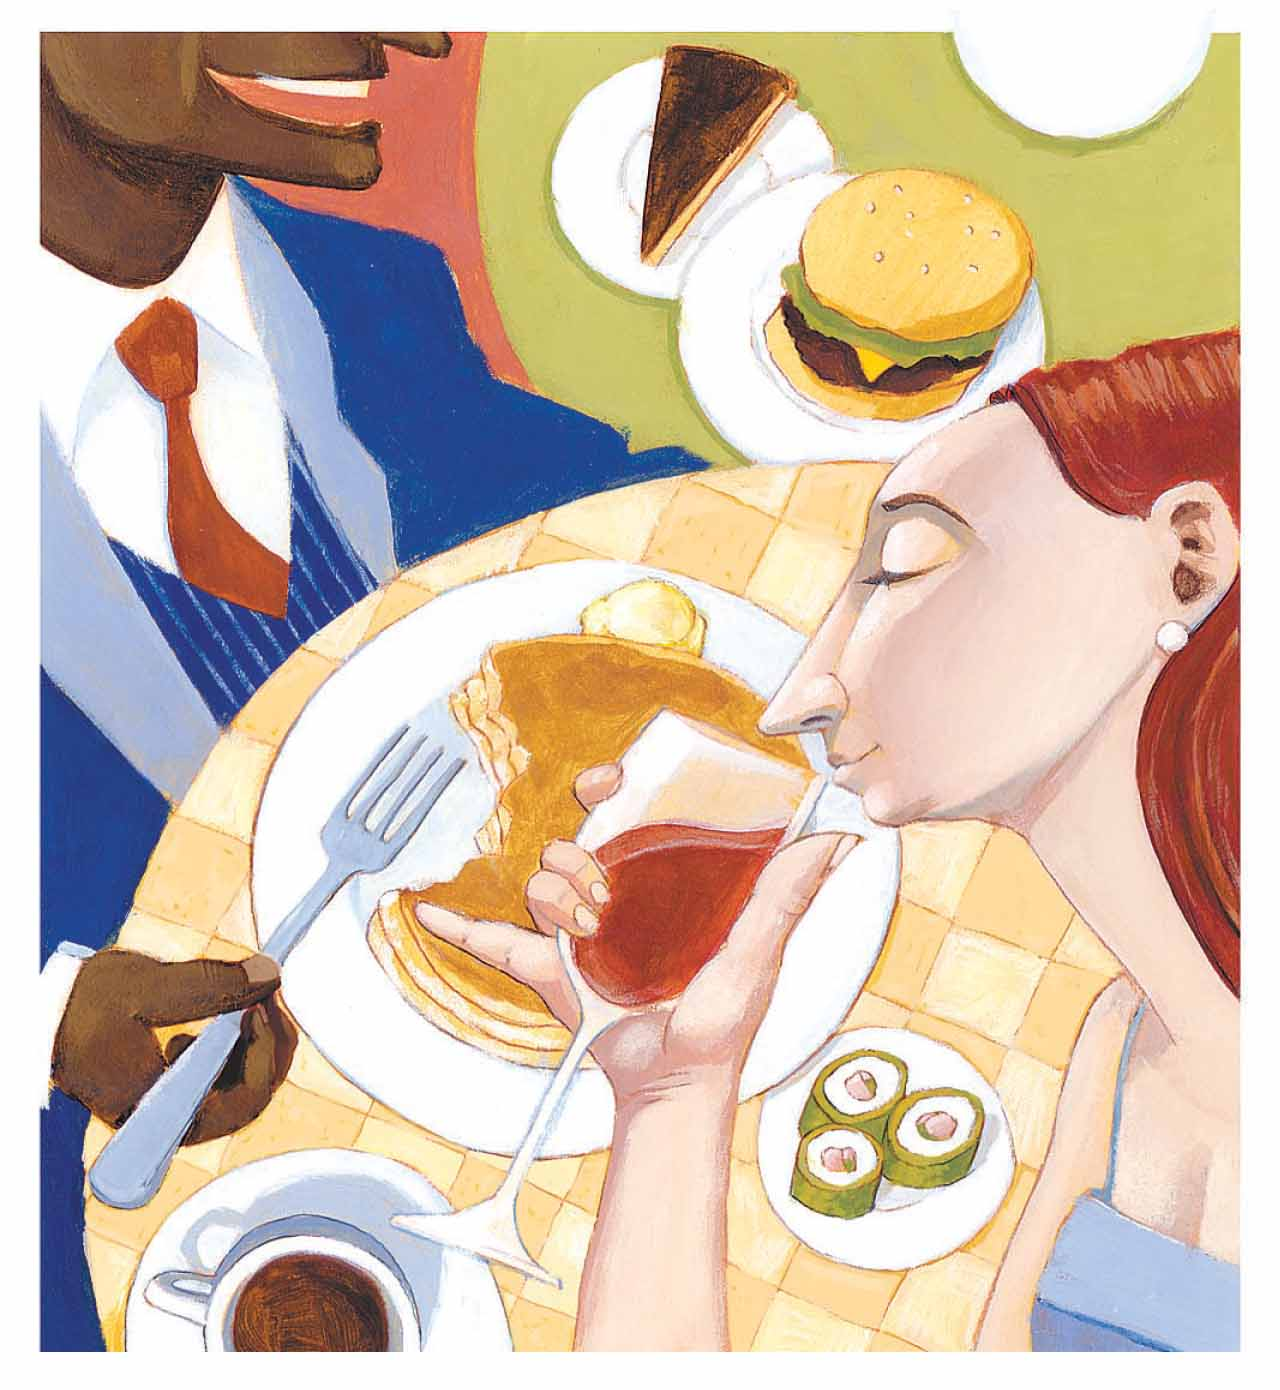 Illustration of two people eating dinnner with a variety of different dishes on the tables.